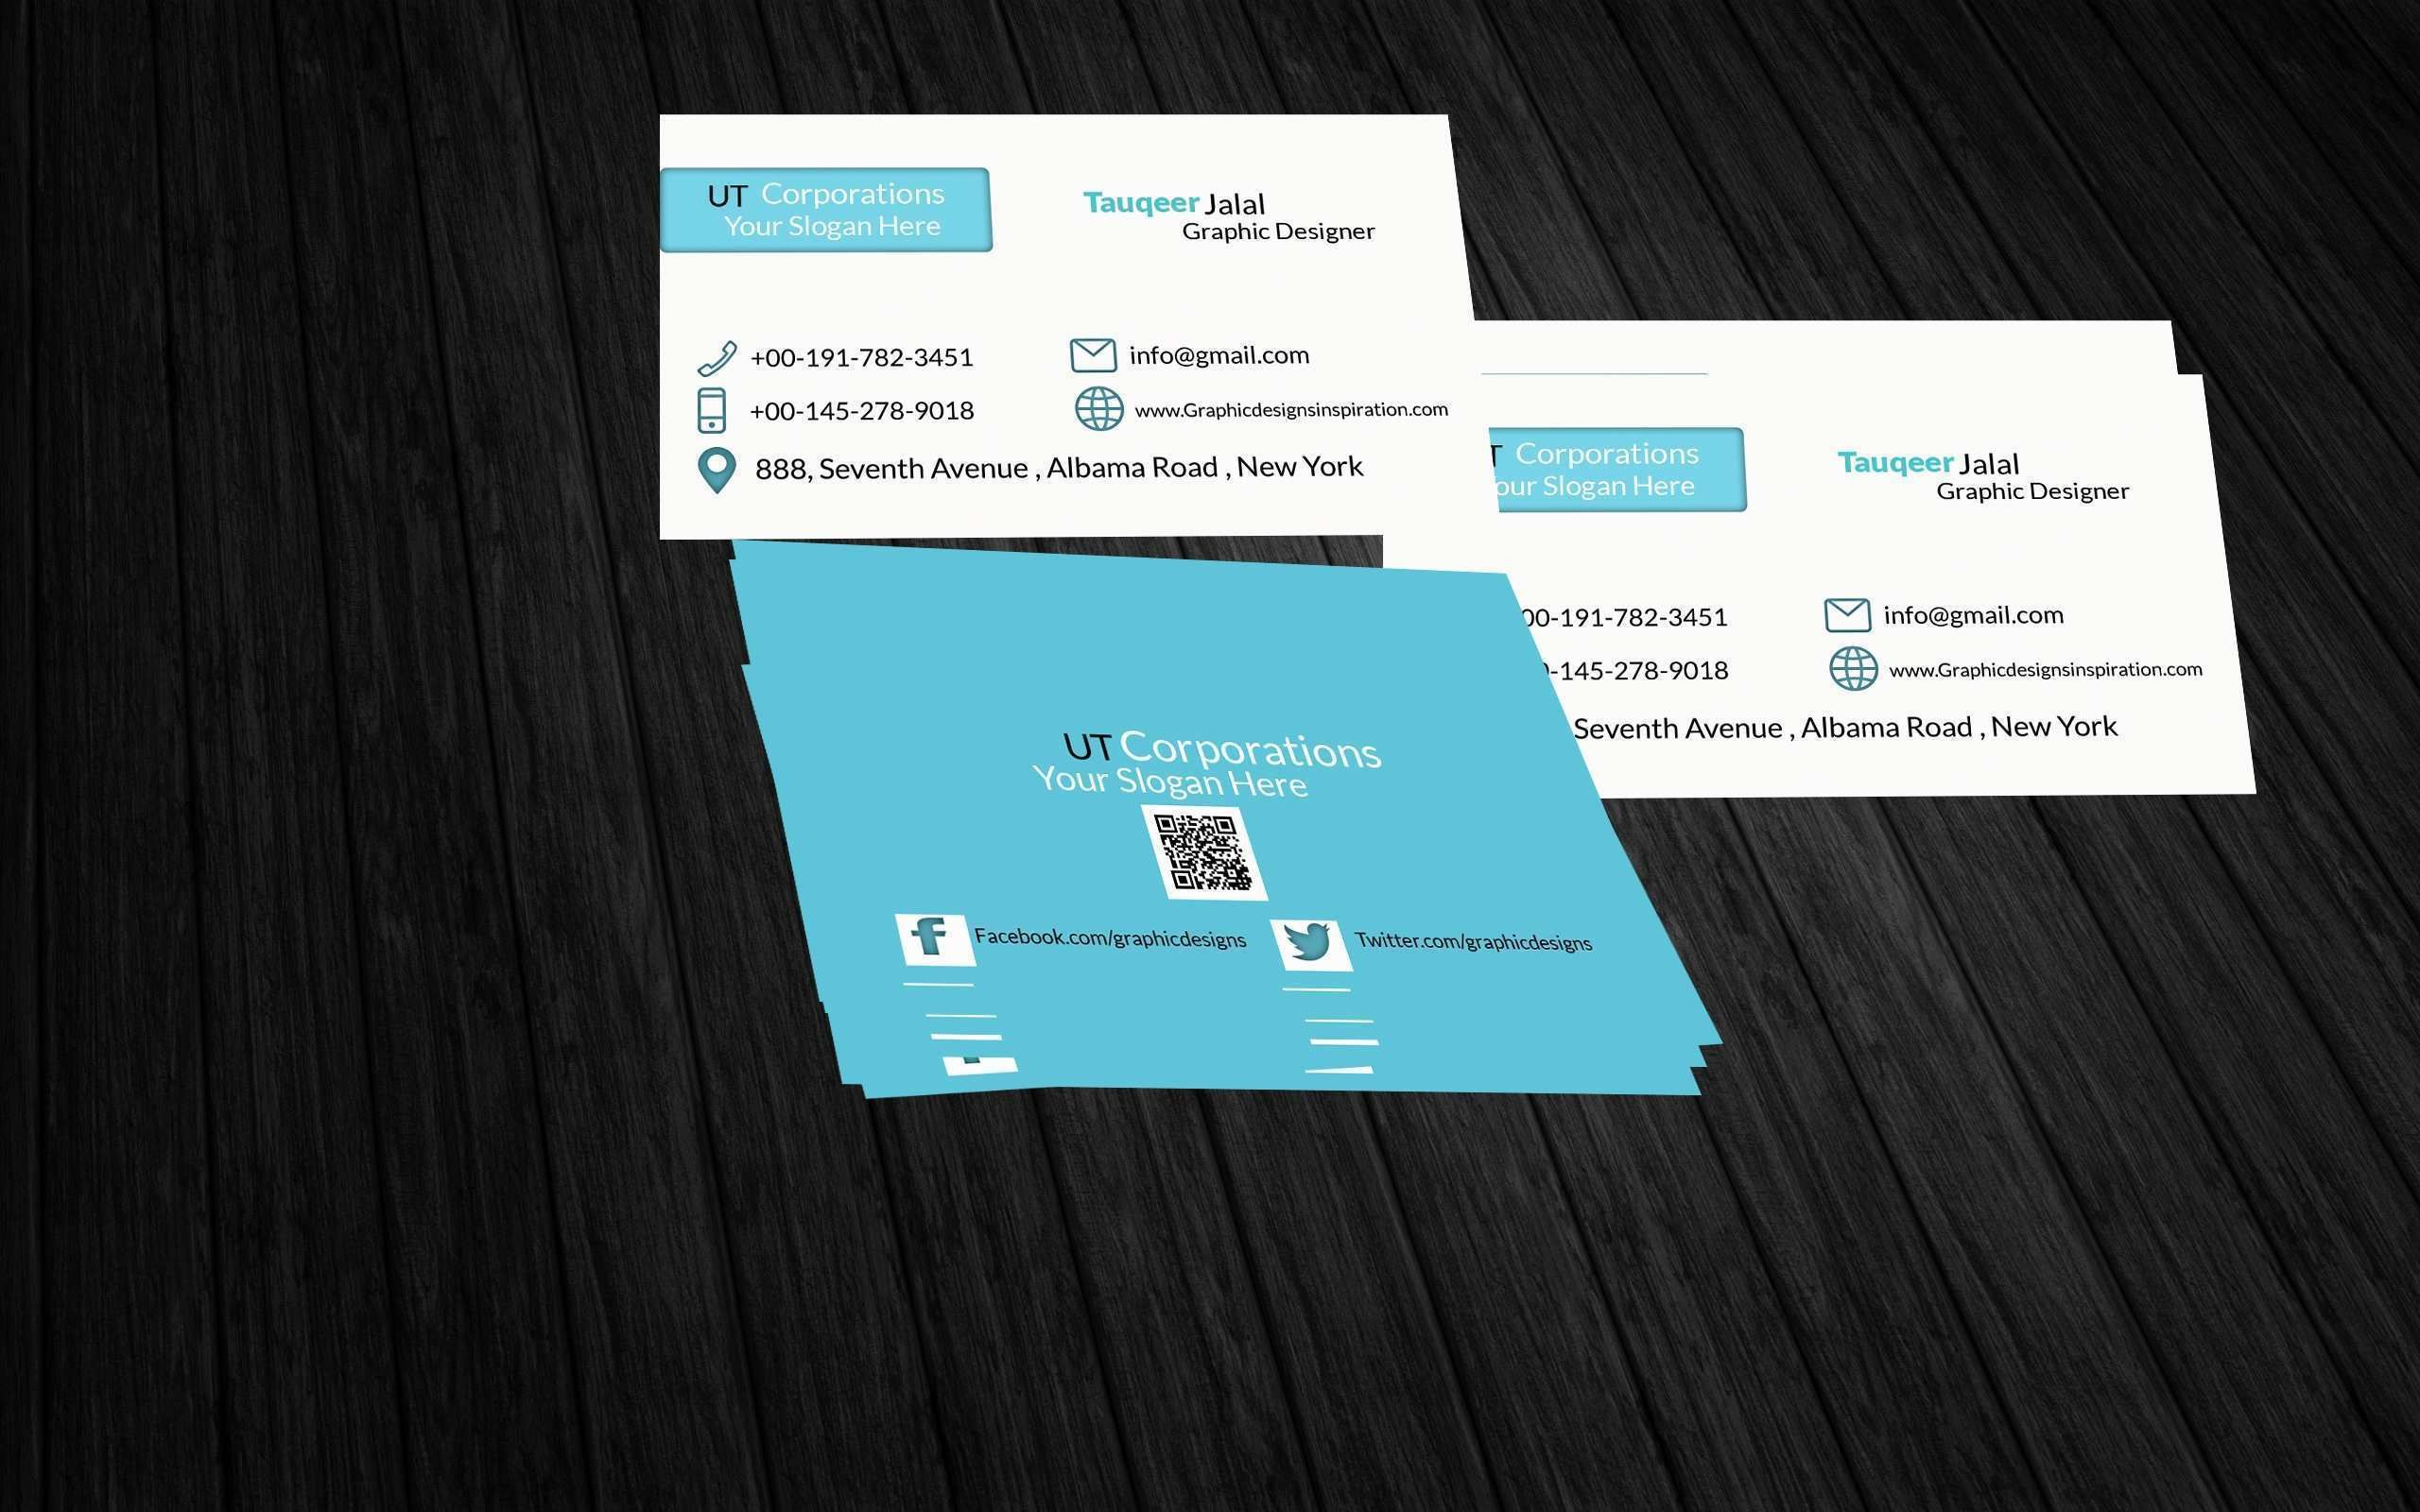 Online Business Card Maker Free Printable Beautiful Business Card - Online Business Card Maker Free Printable